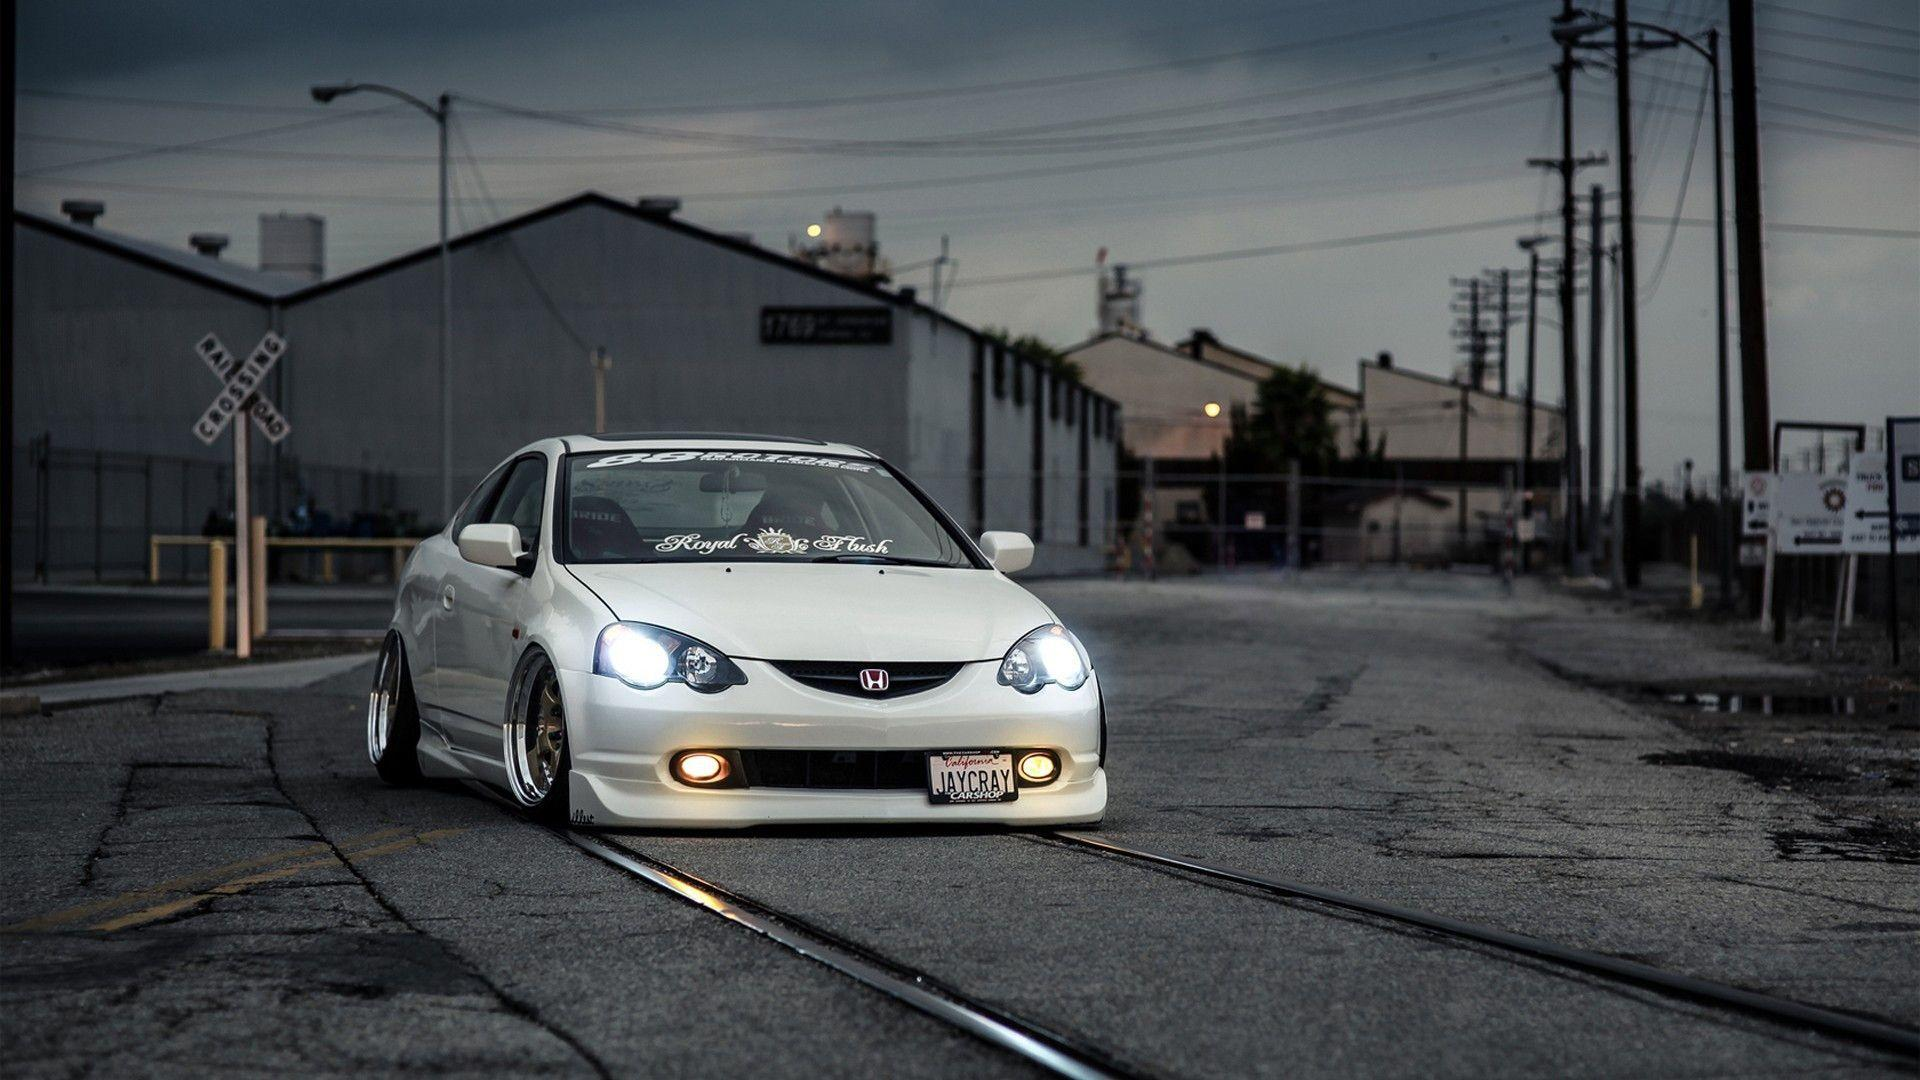 JDM Acura RSX HD Wallpapers Acura Car Wallpapers